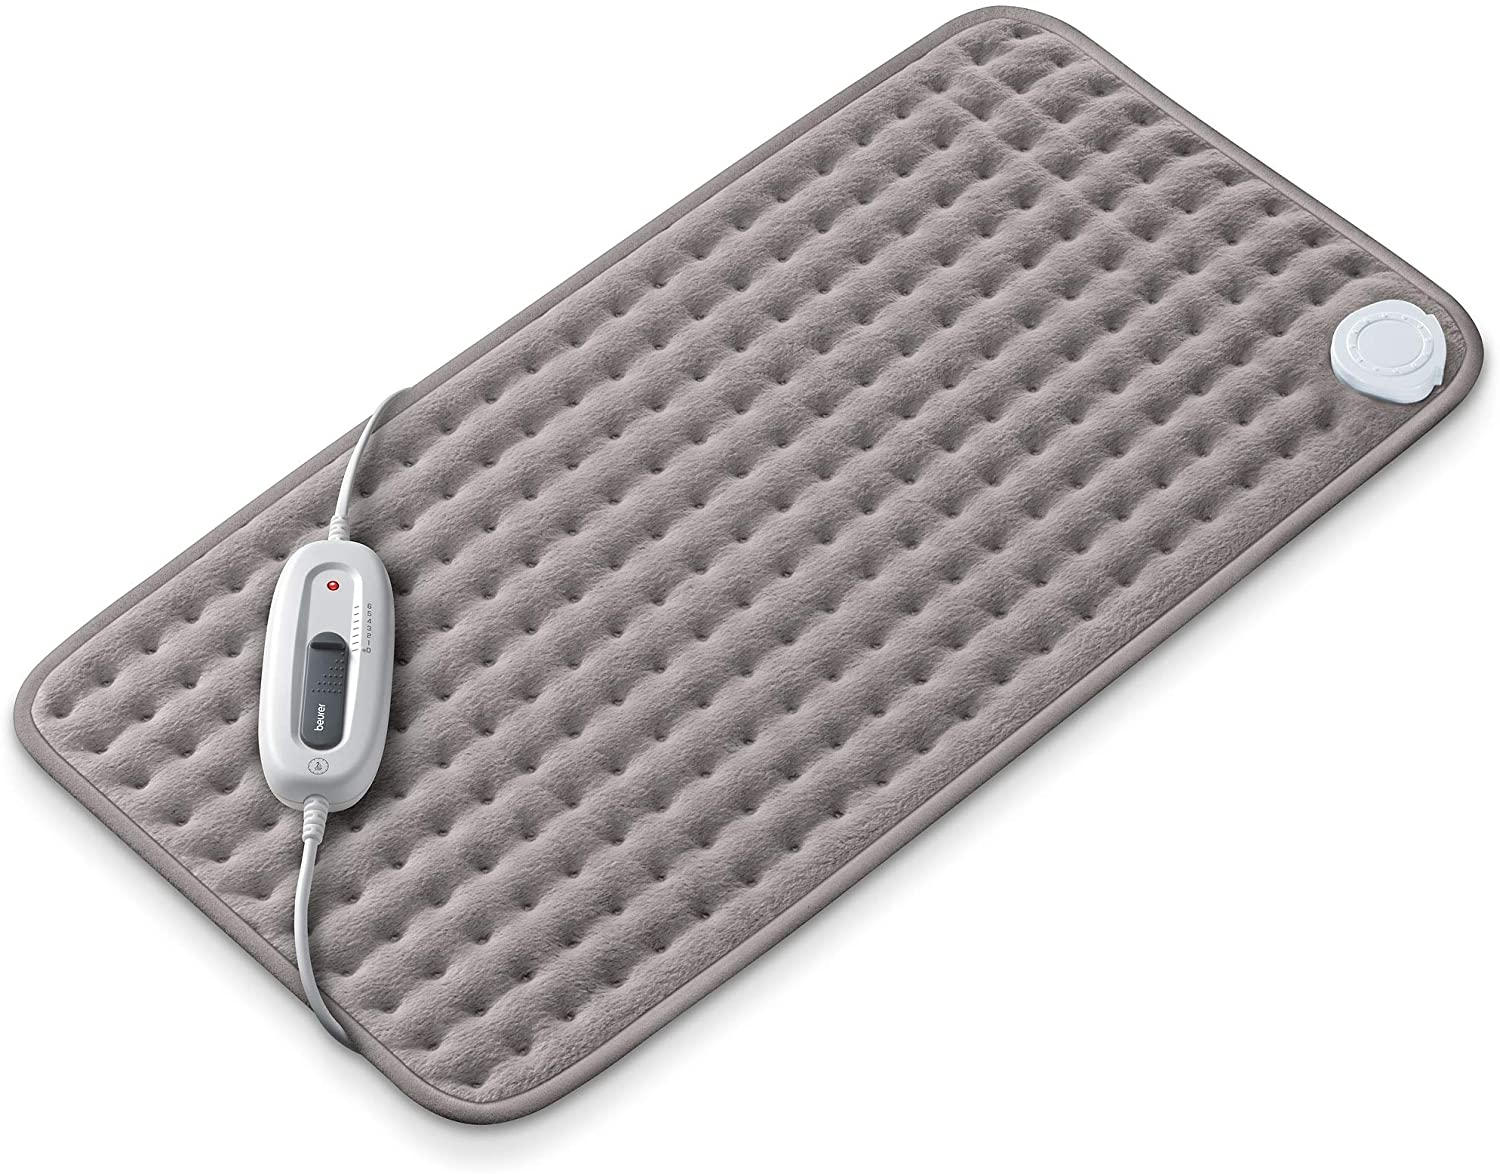 Review of Beurer Large ultra-soft heating pad